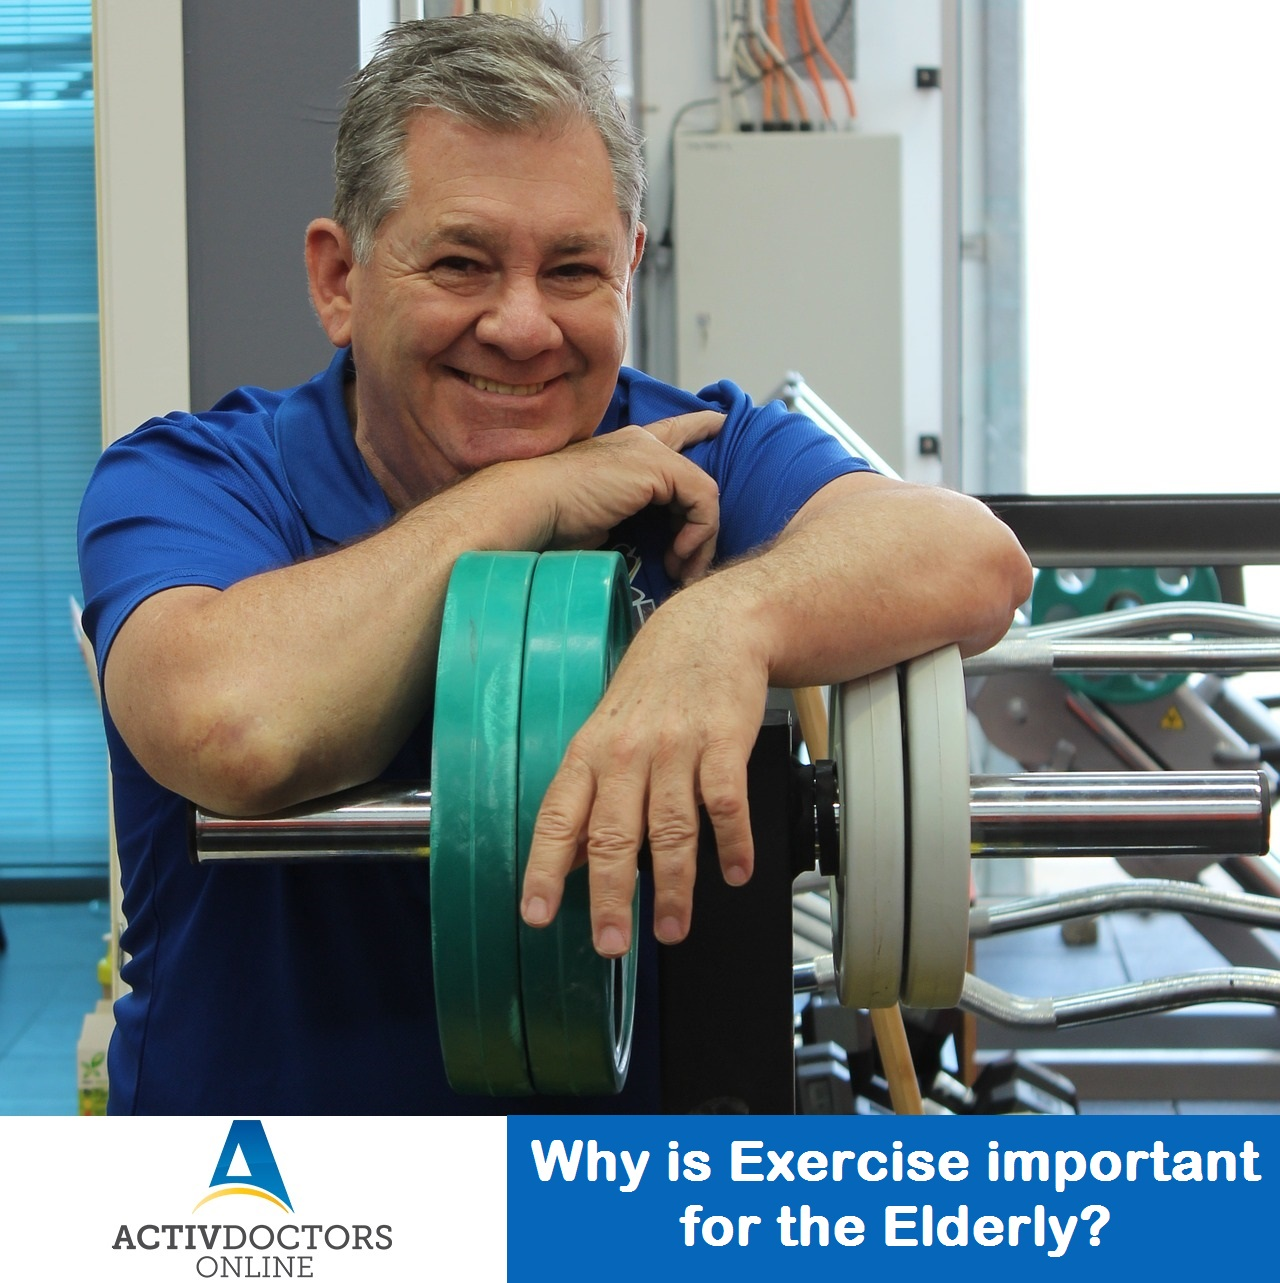 Why is Exercise important for the Elderly?